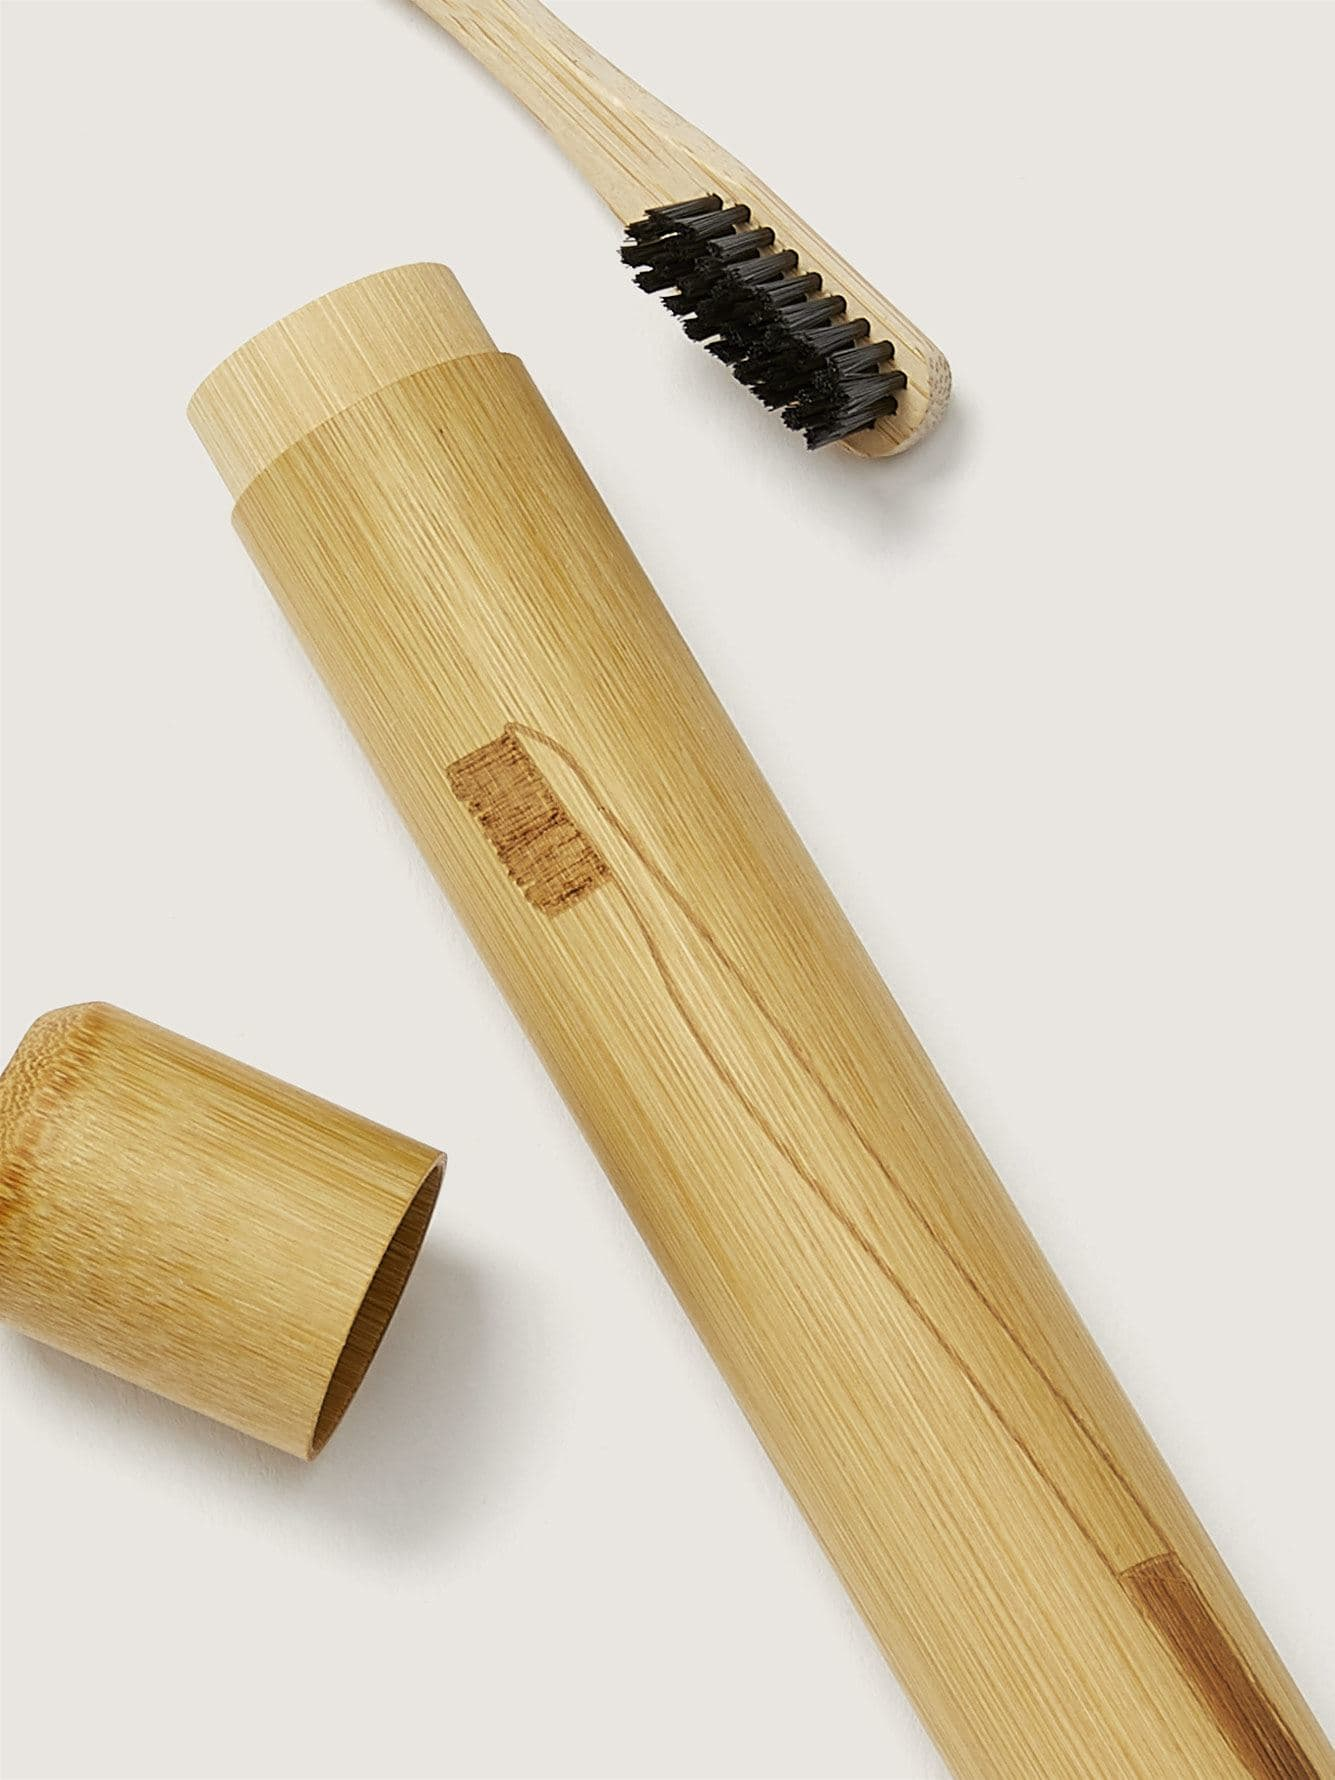 BKIND - Bamboo Toothbrush Case